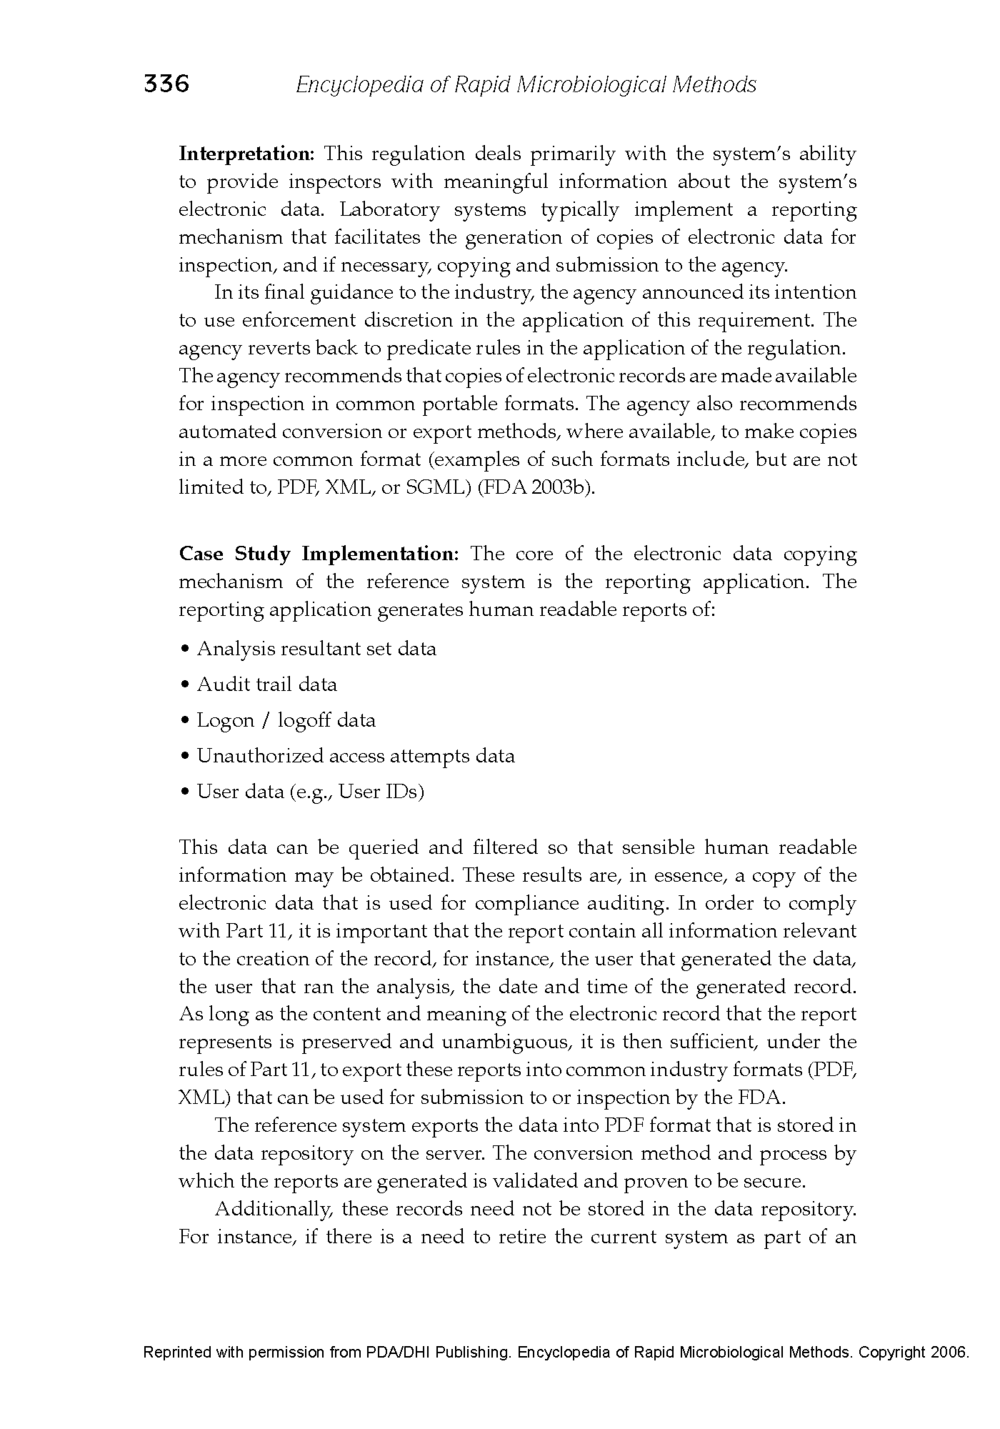 21 CFR Part 11 - Case Study Published in the Encyclopedia of Rapid Microbiological Methods - Volume 1, DHI Publishing_Page_14.png